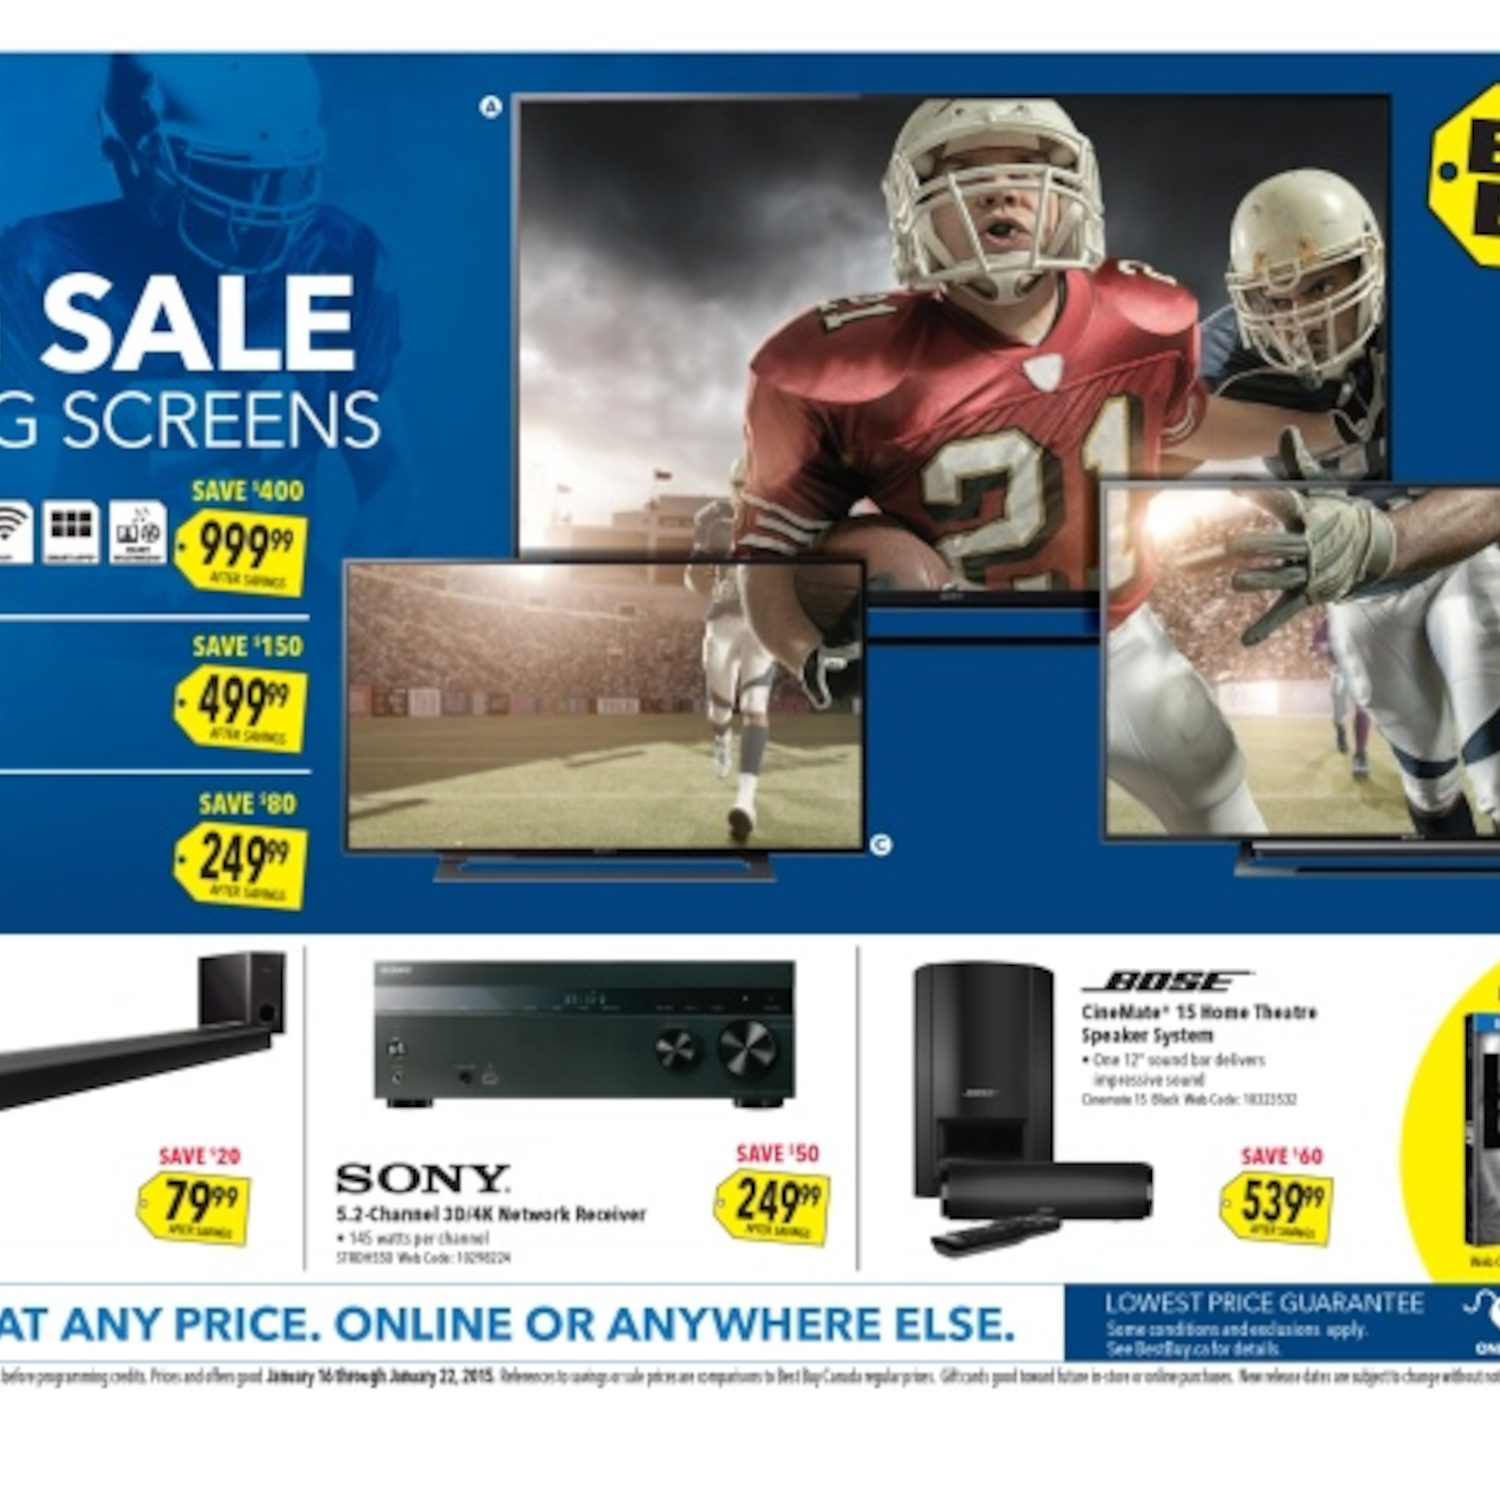 Best buy weekly flyer big sale on big screens jan 16 22 redflagdeals com